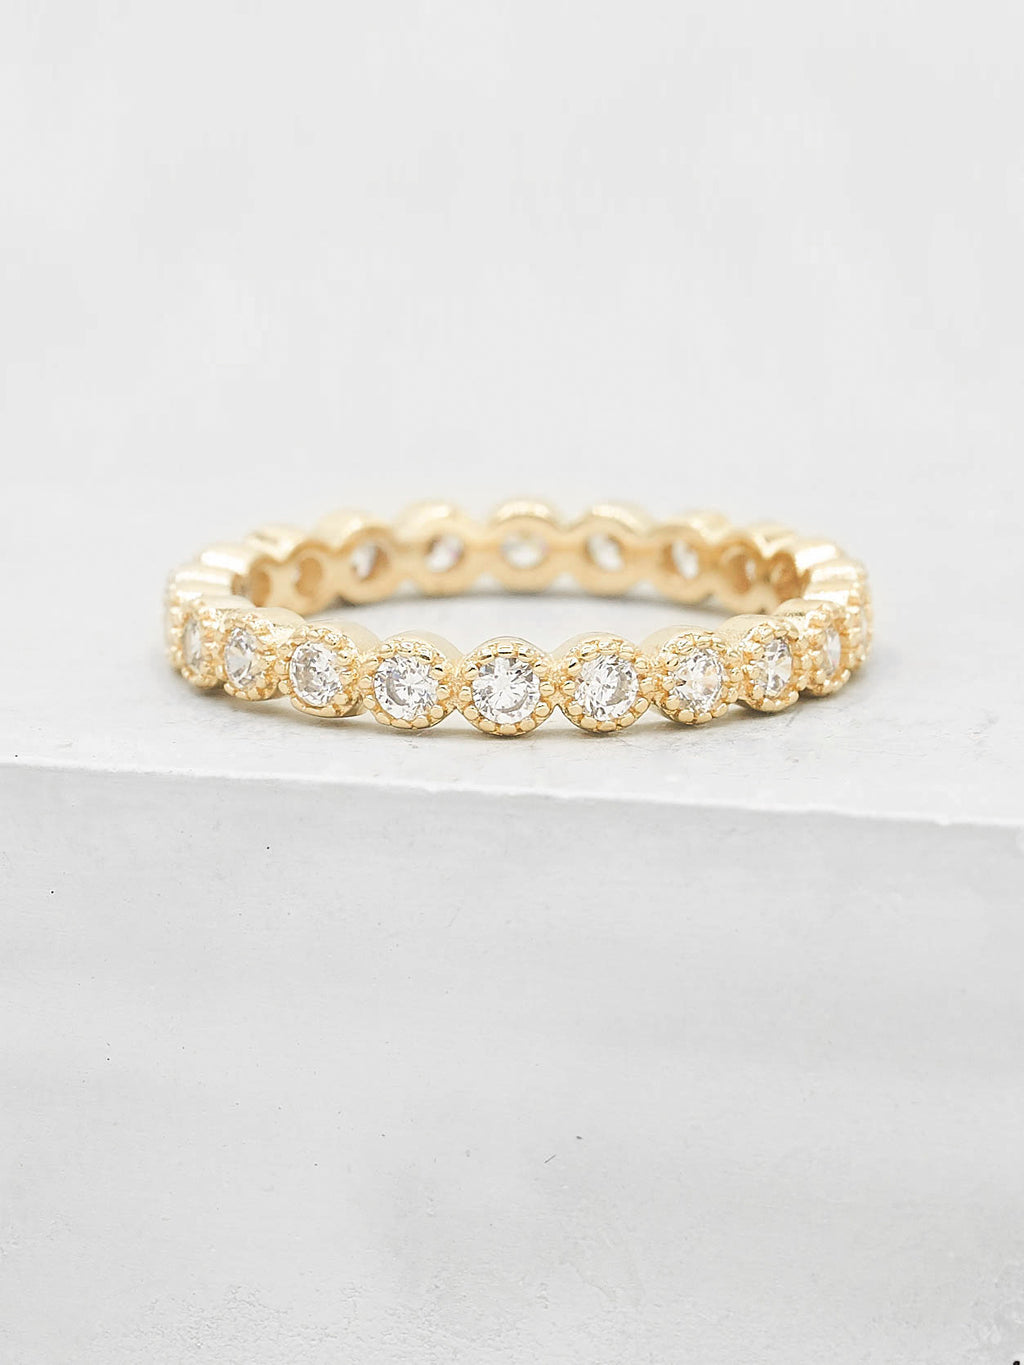 Bezel Set Milgrain Gold Plated Ring with White CZ by The Faint Hearted Jewelry